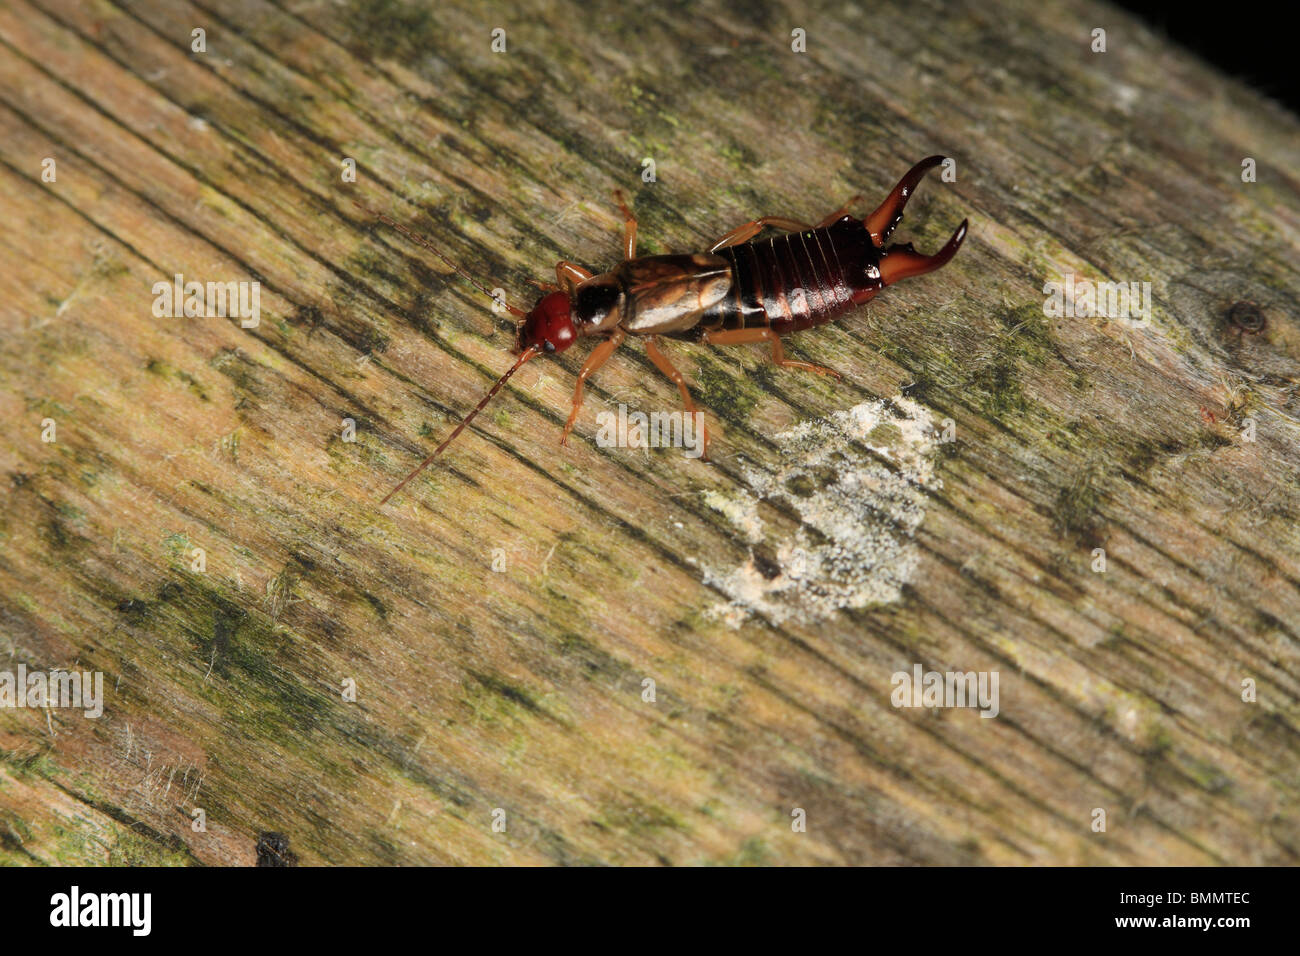 EARWIG (Forficula auricularia) MALE ON WOODEN POST - Stock Image